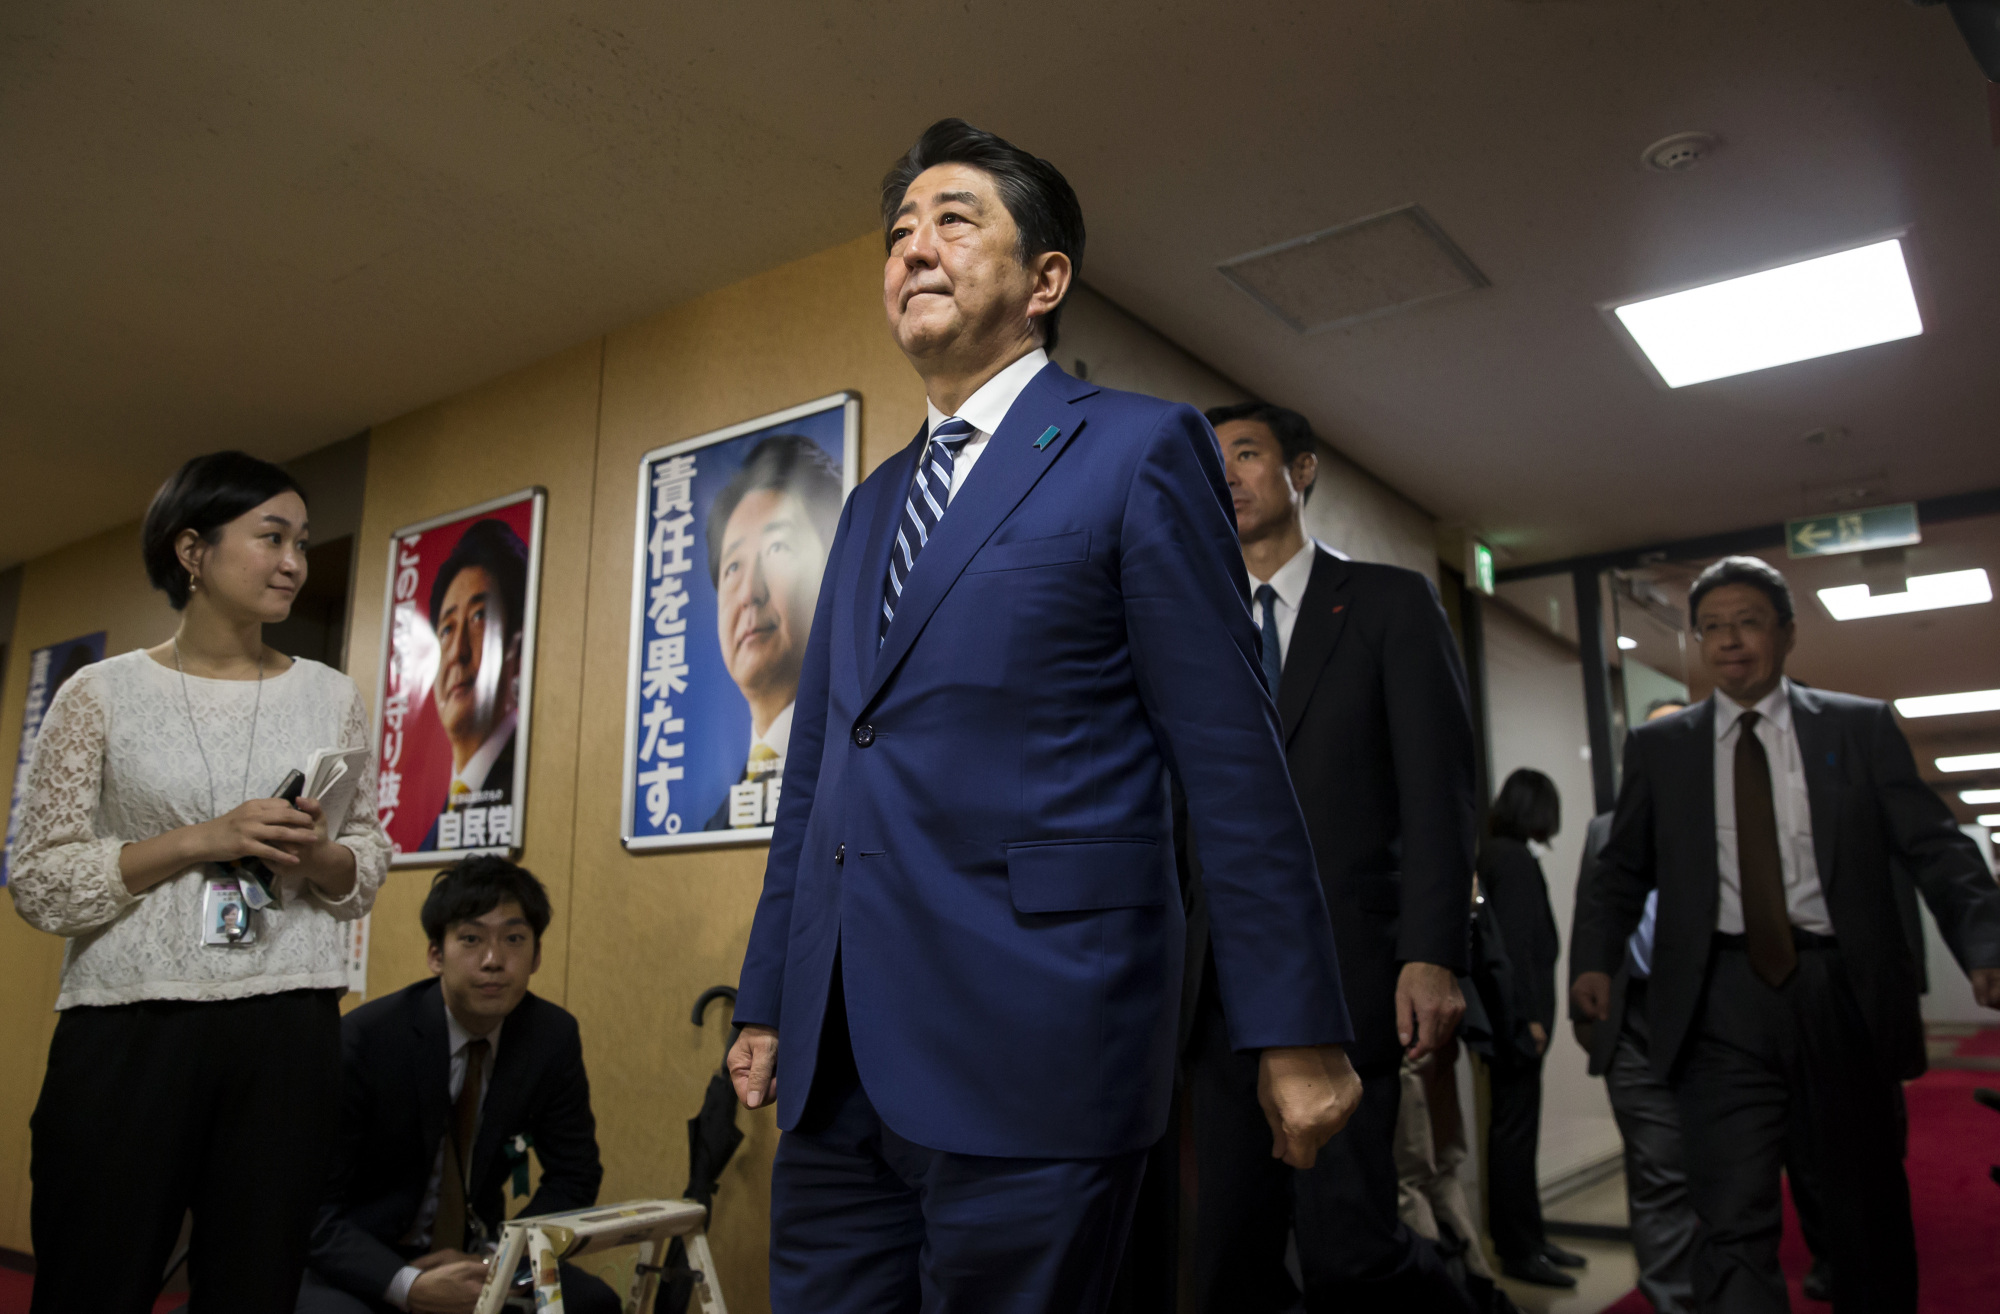 Emboldened by the victory of his ruling coalition in Sunday's general election, Prime Minister Shinzo Abe is likely to boost government spending to speed up his Abenomics deflation-fighting economic policy mix. | BLOOMBERG